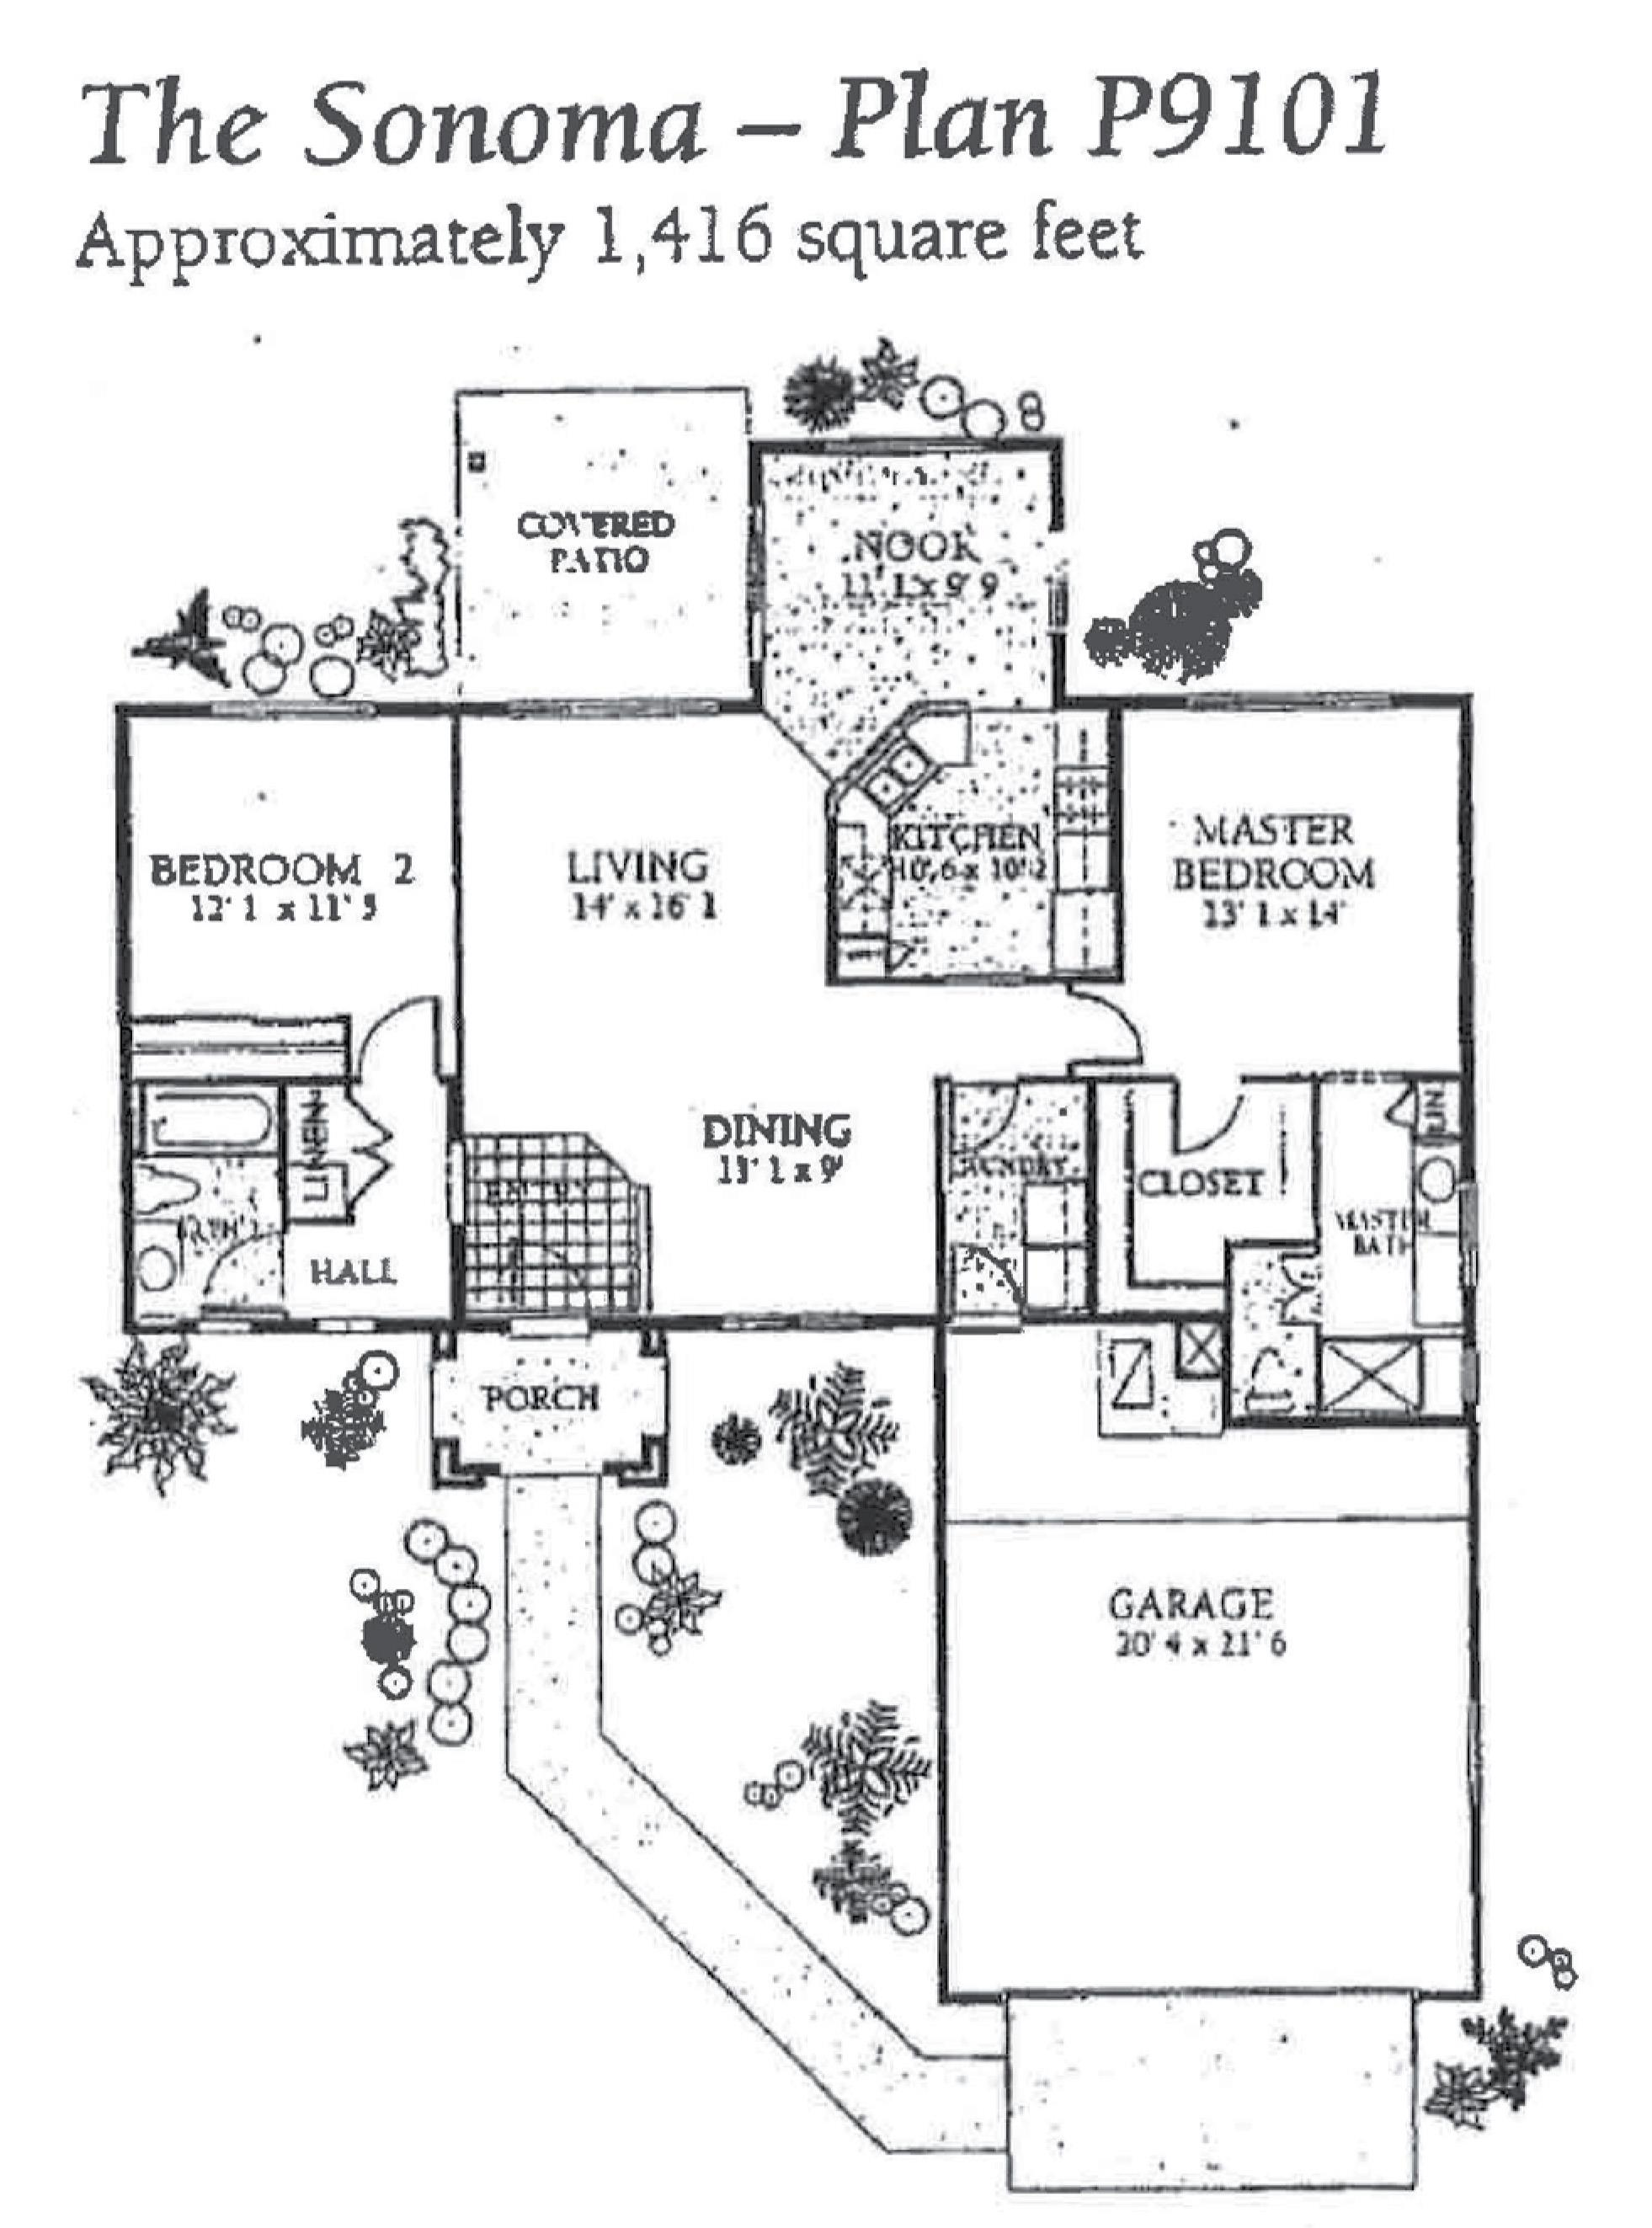 Sun City Grand Sonoma Floor Plan Del Webb Sun City Grand Floor Plan